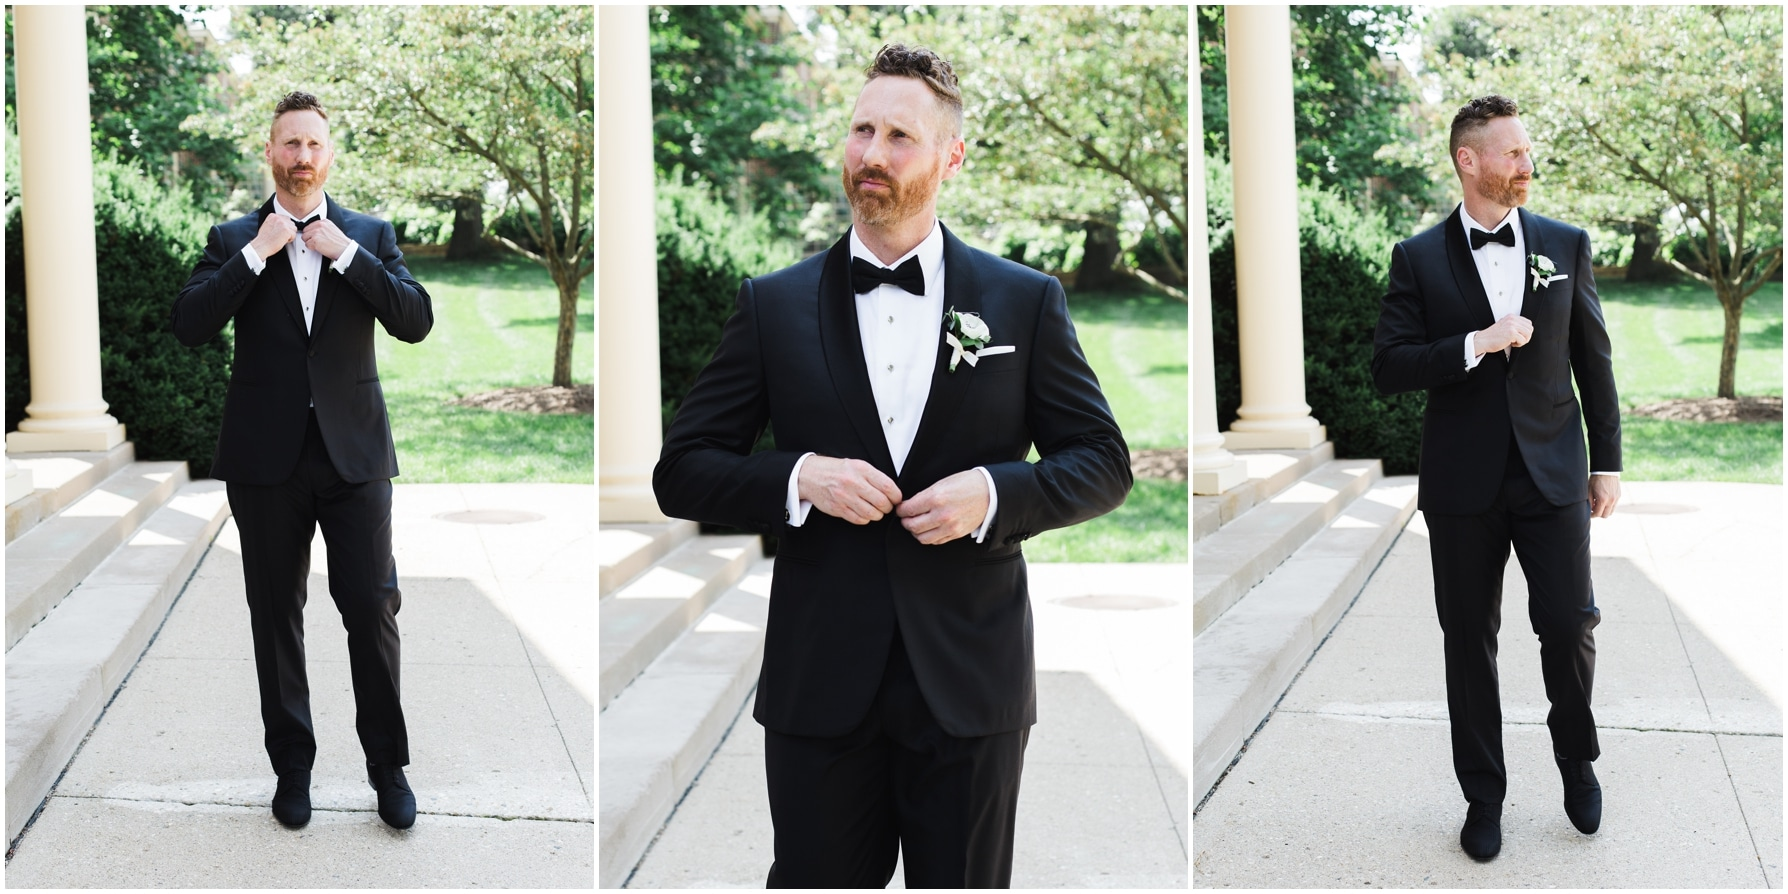 adam lowe photography, wedding, style, love, bride and groom, wedding dress, wedding tux, stylish, columbus, ohio, Leveque Tower